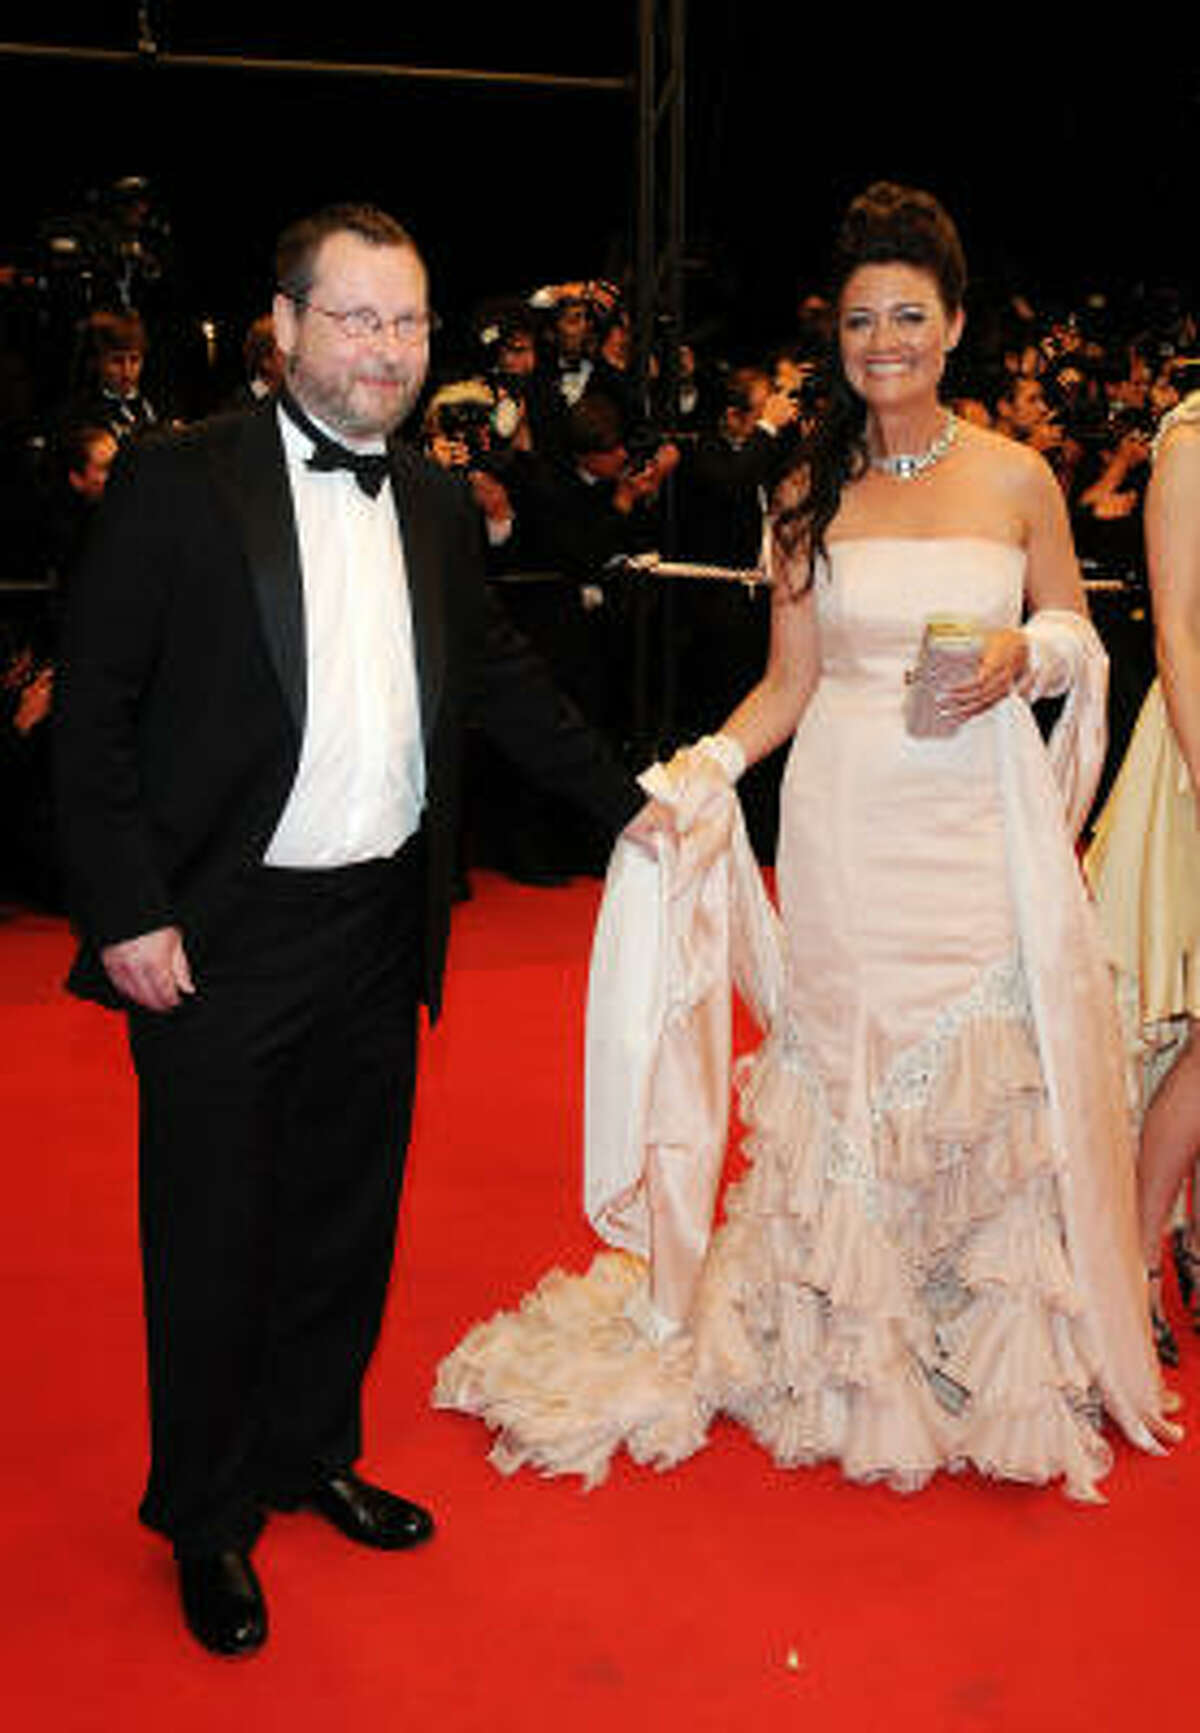 CANNES, FRANCE - MAY 18: Director Lars von Trier and guest attend the Antichrist Premiere held at the Palais Des Festivals during the 62nd International Cannes Film Festival on May 18, 2009 in Cannes, France.